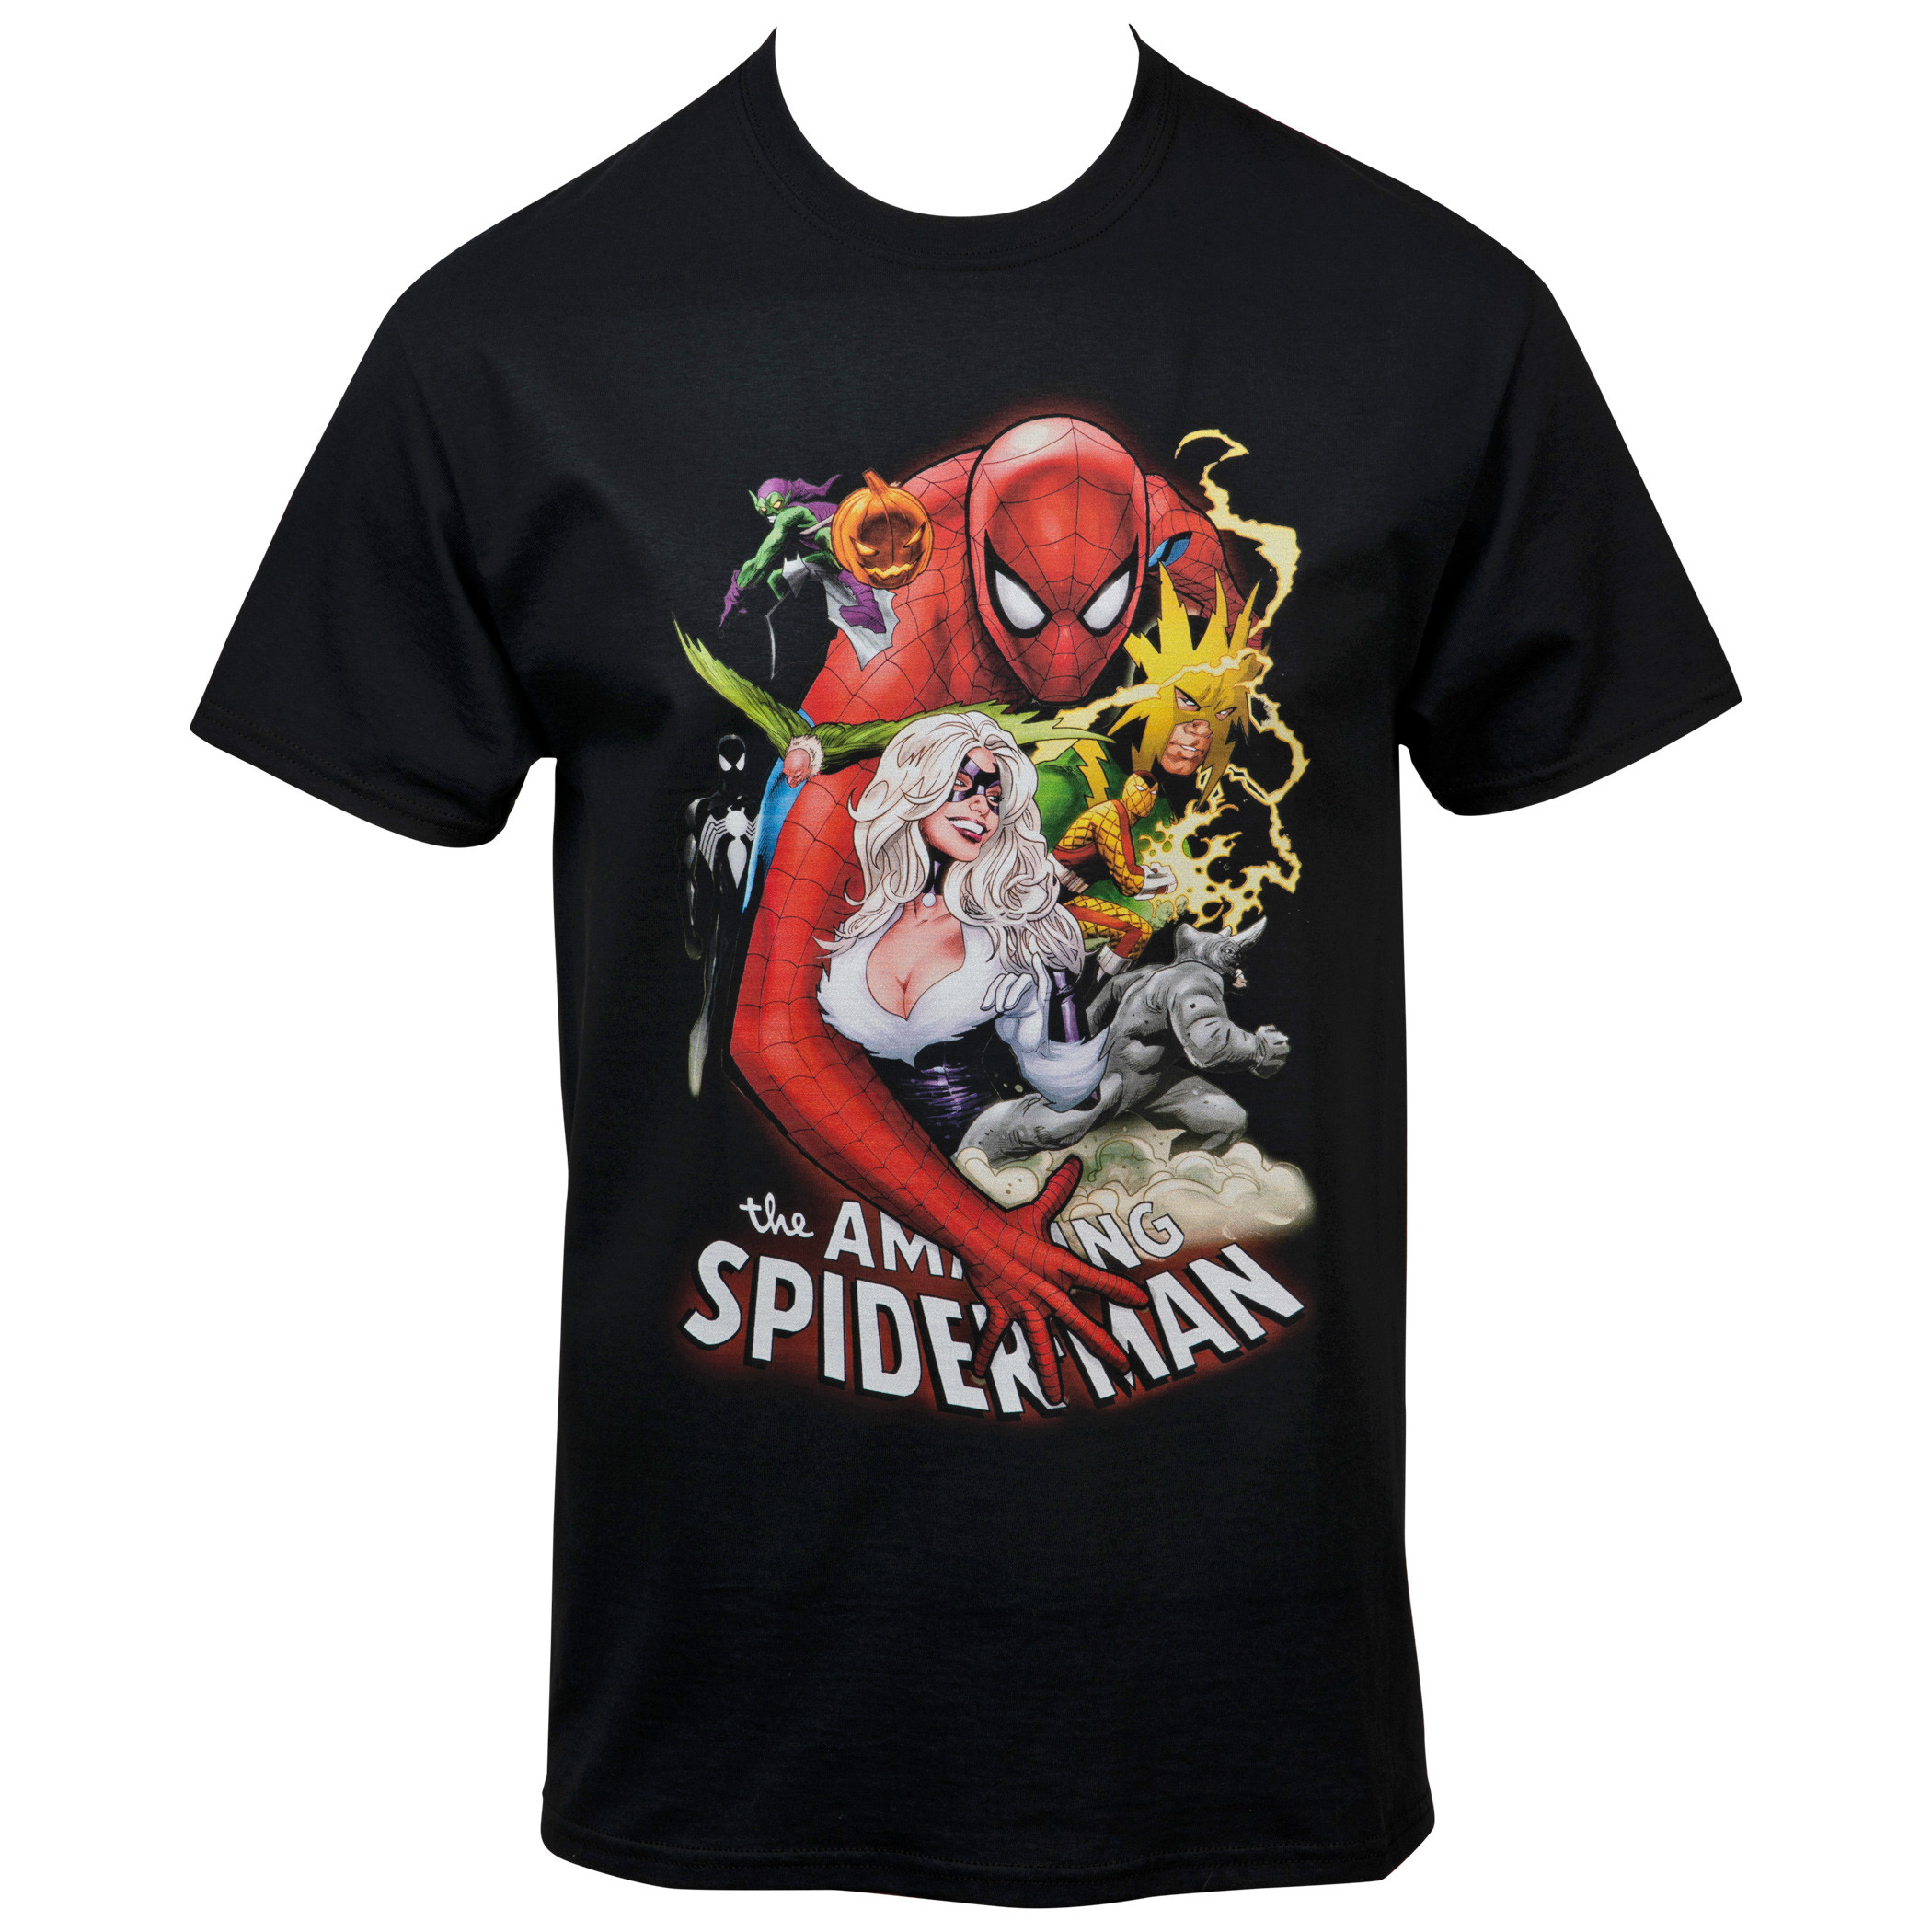 Marvel The Amazing Spider-Man Comic Cover T-Shirt